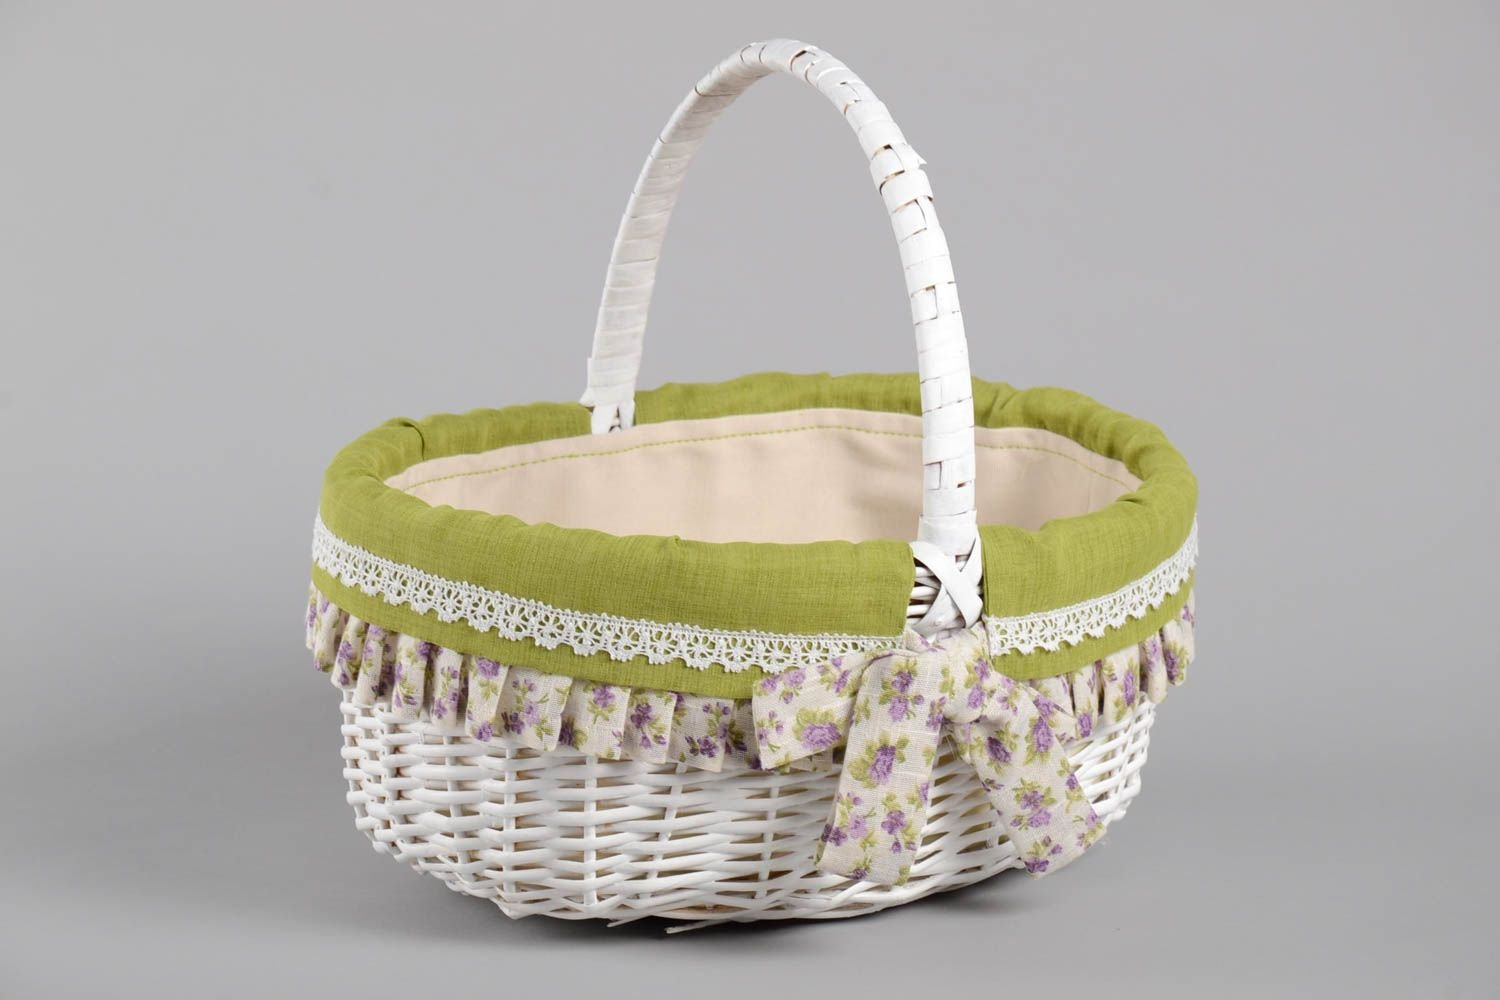 Handmade Basket Unusual Basket Gift Ideas Decorative Use Only Unusual Gift